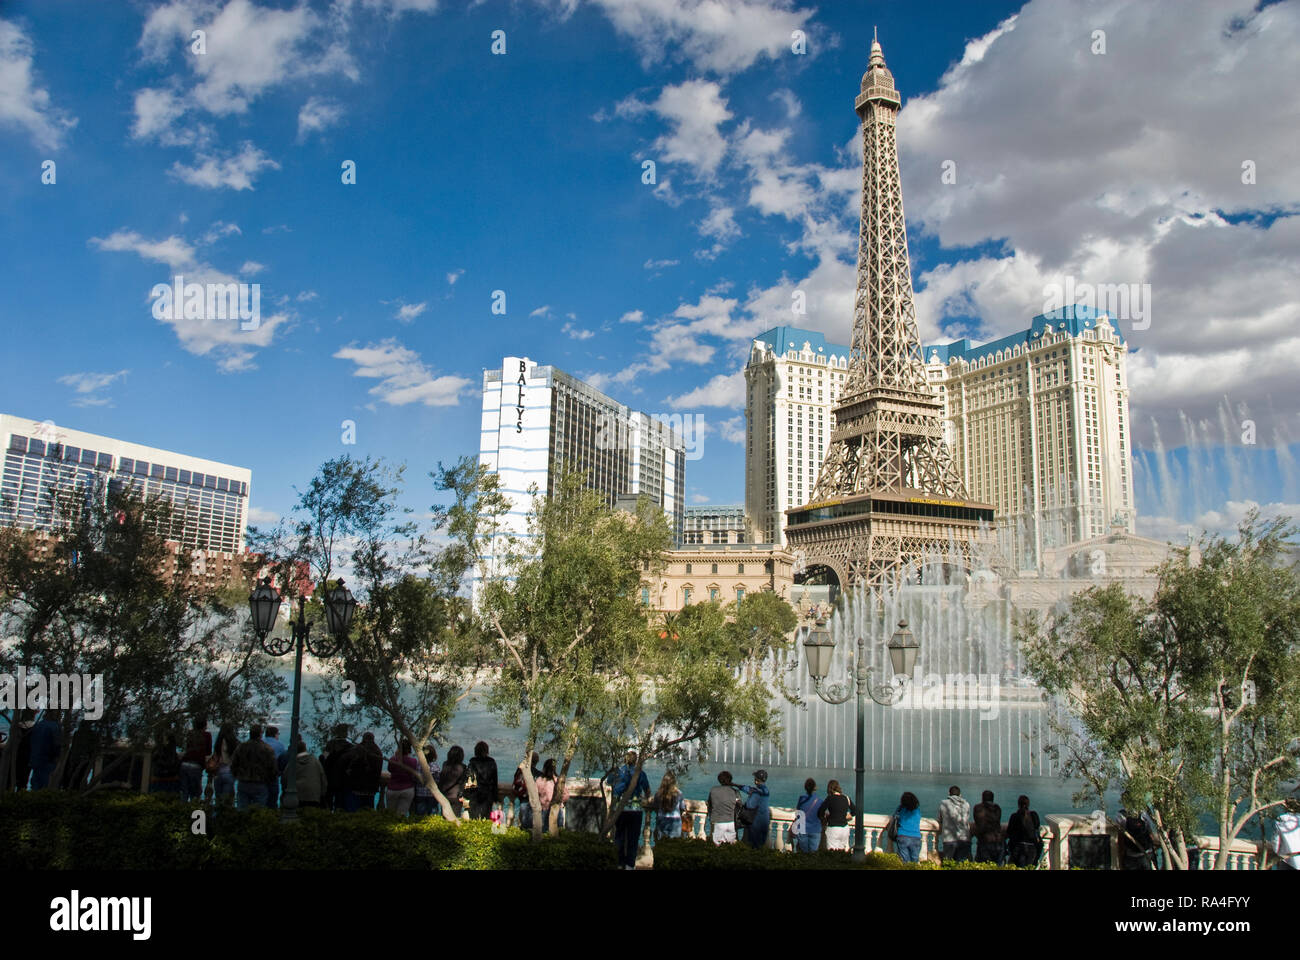 The fountains of the Bellagio casino seen in front of the Paris Las Vegas hotel and casino on the Strip, in Las Vegas, Nevada. - Stock Image